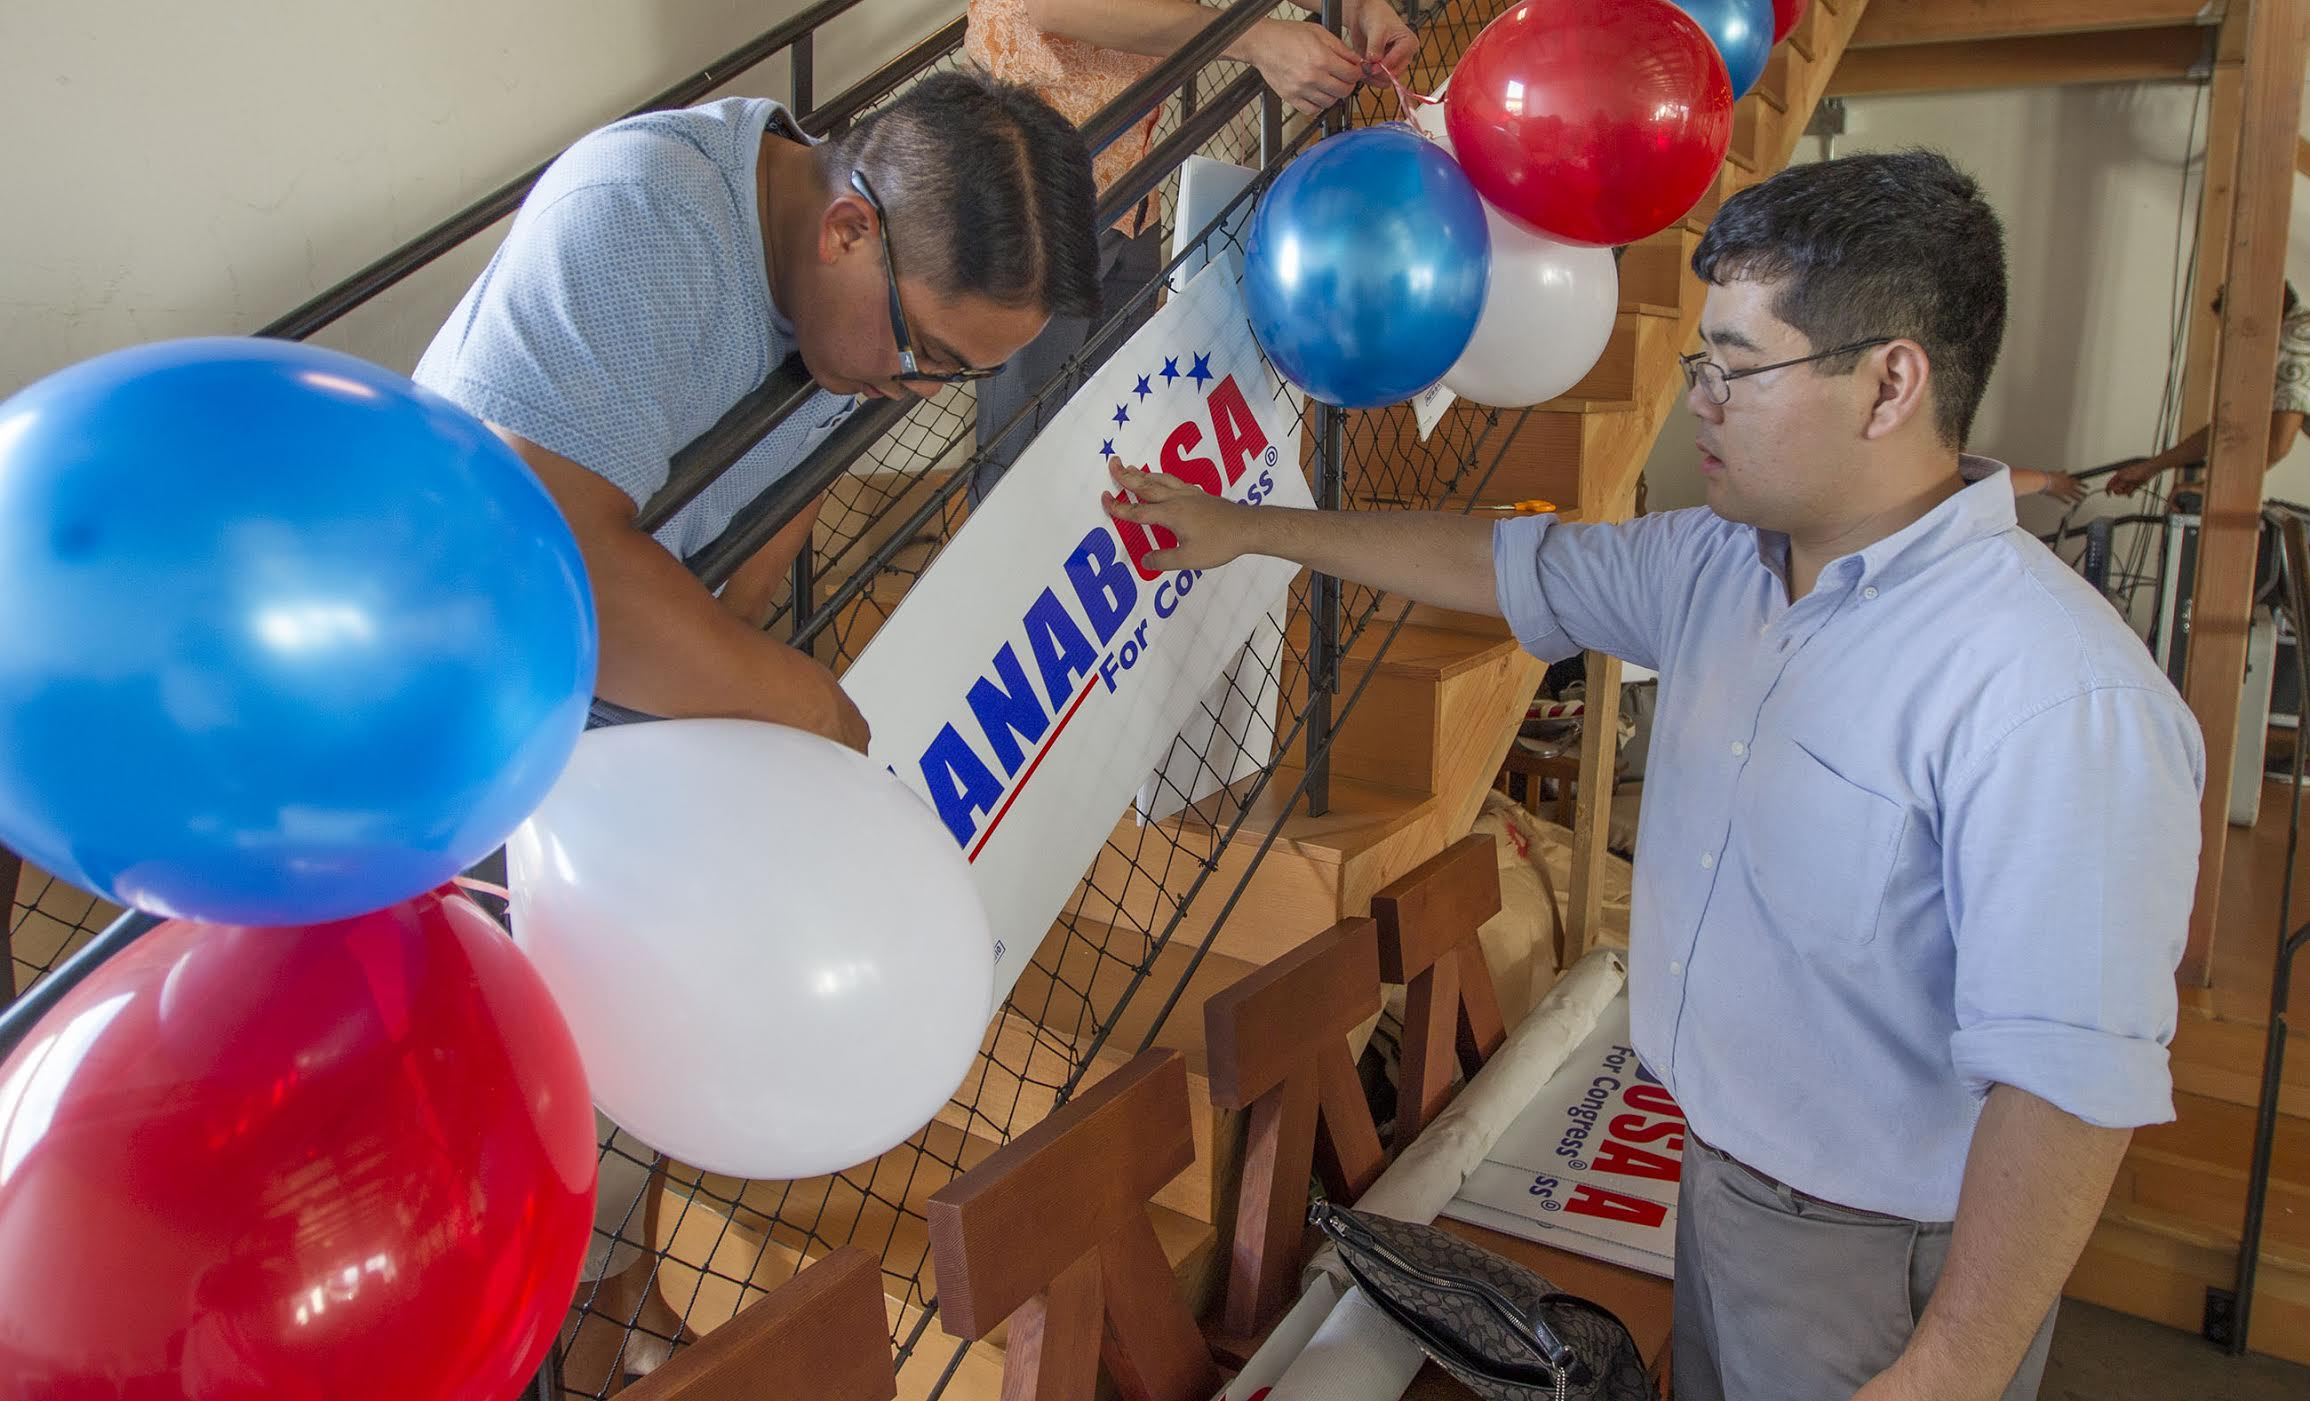 <p>By afternoon, campaign workers were preparing for parties. Volunteers Rufino Magliba, left, and Chris Murata helped prepare the election night headquarters of congressional candidate Colleen Hanabusa. (Eugene Tanner/Civil Beat)</p>